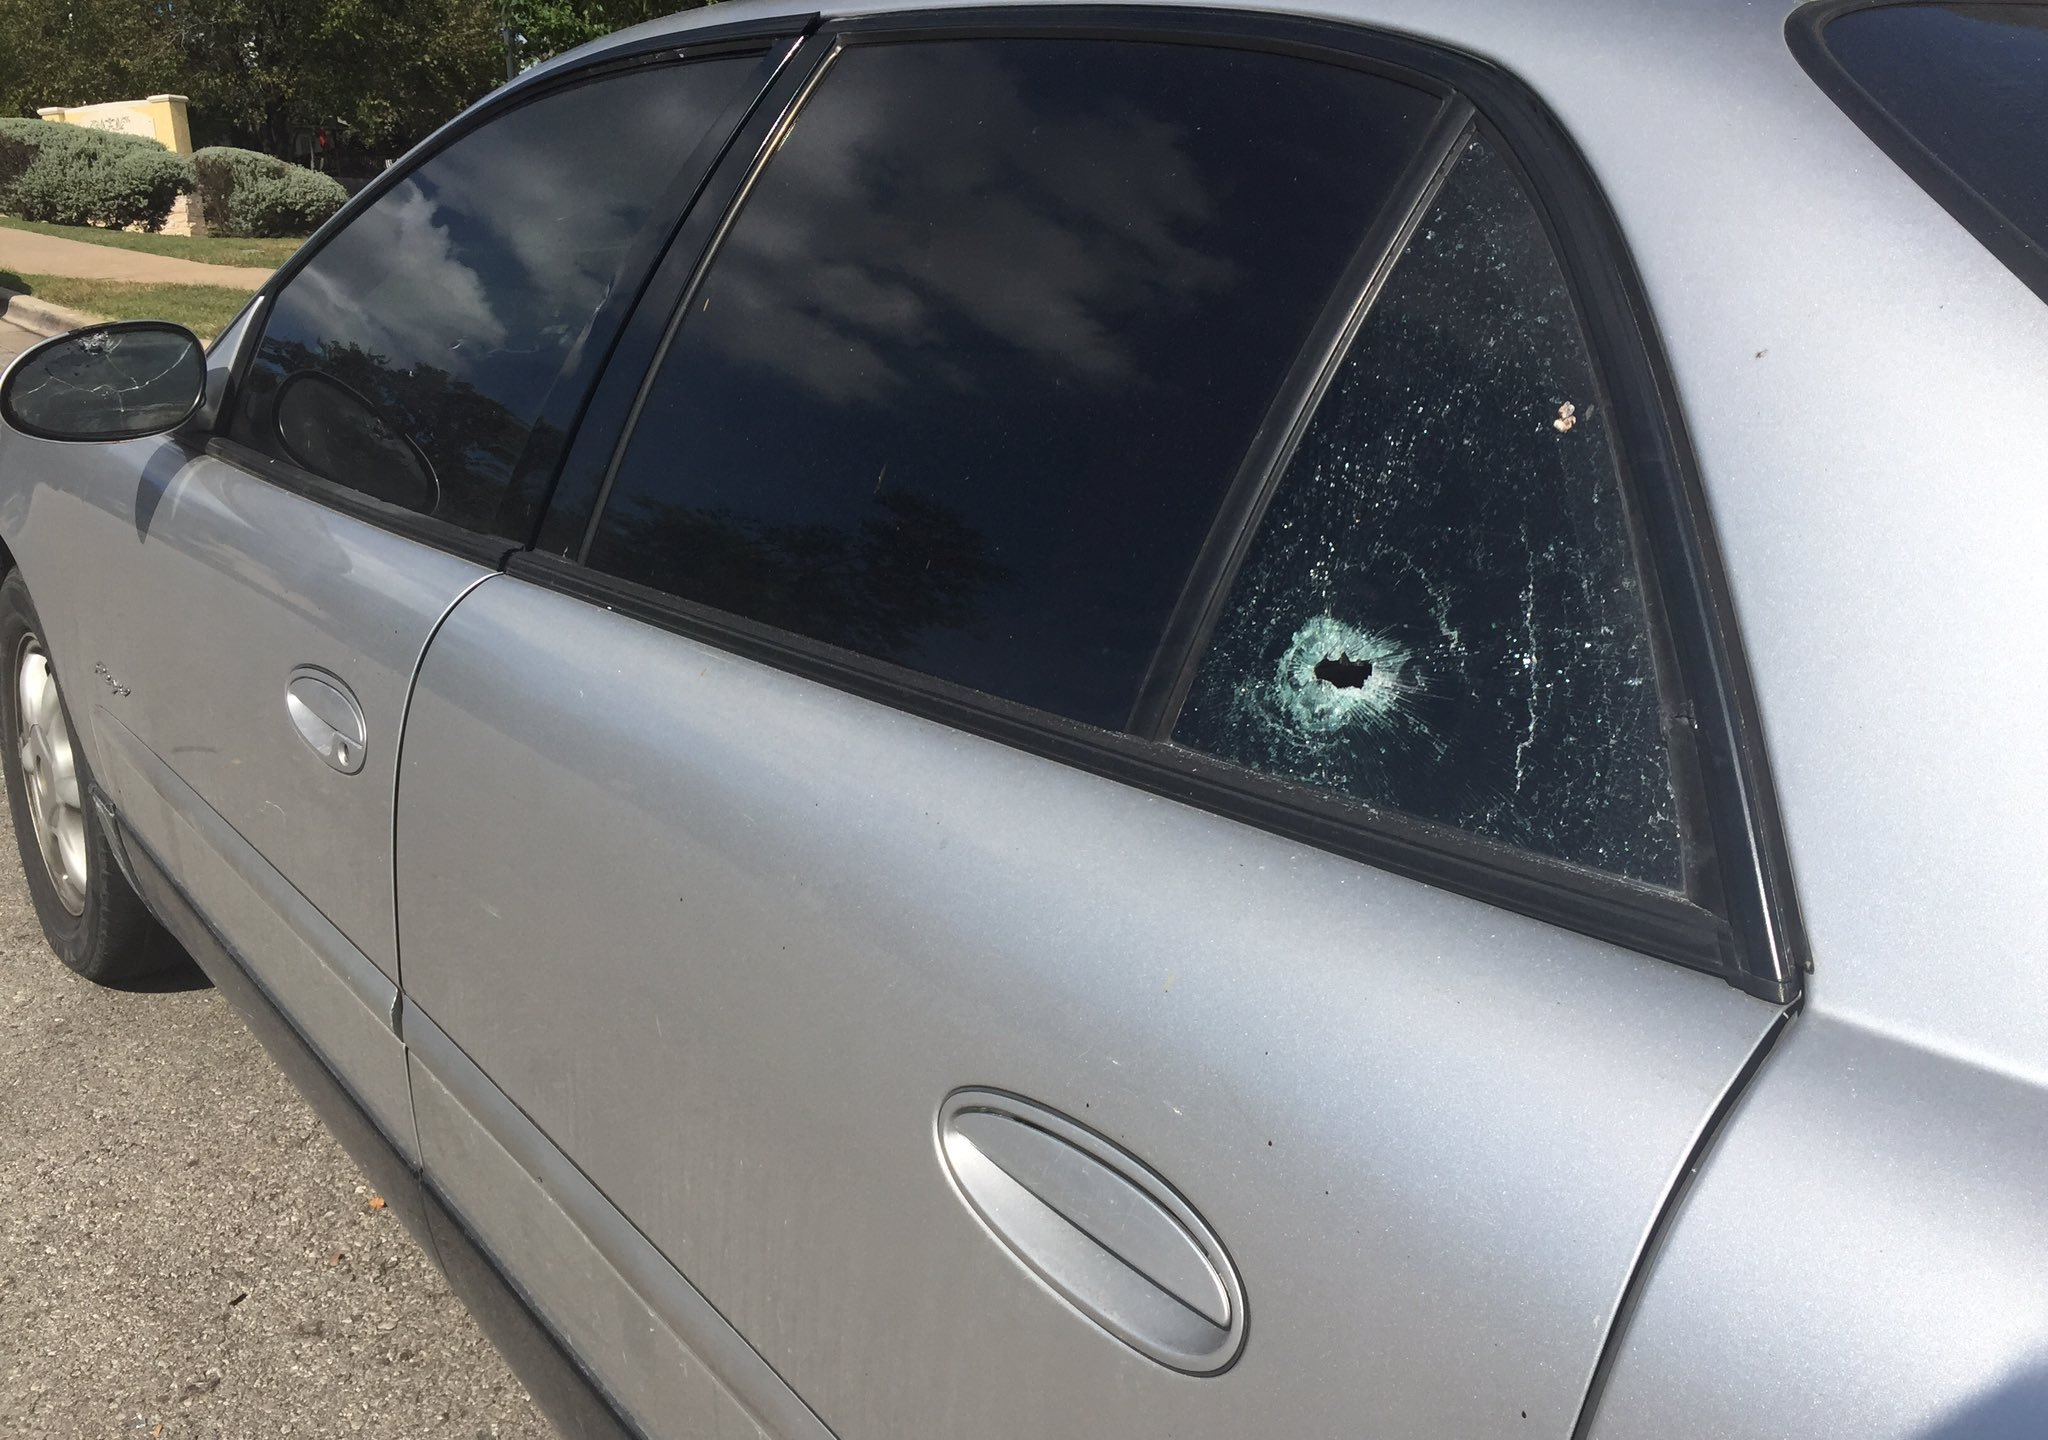 A car hit during a shooting in the 5900 block of E. Stassney Lane that left a teenager injured. Sept. 22, 2016_351637